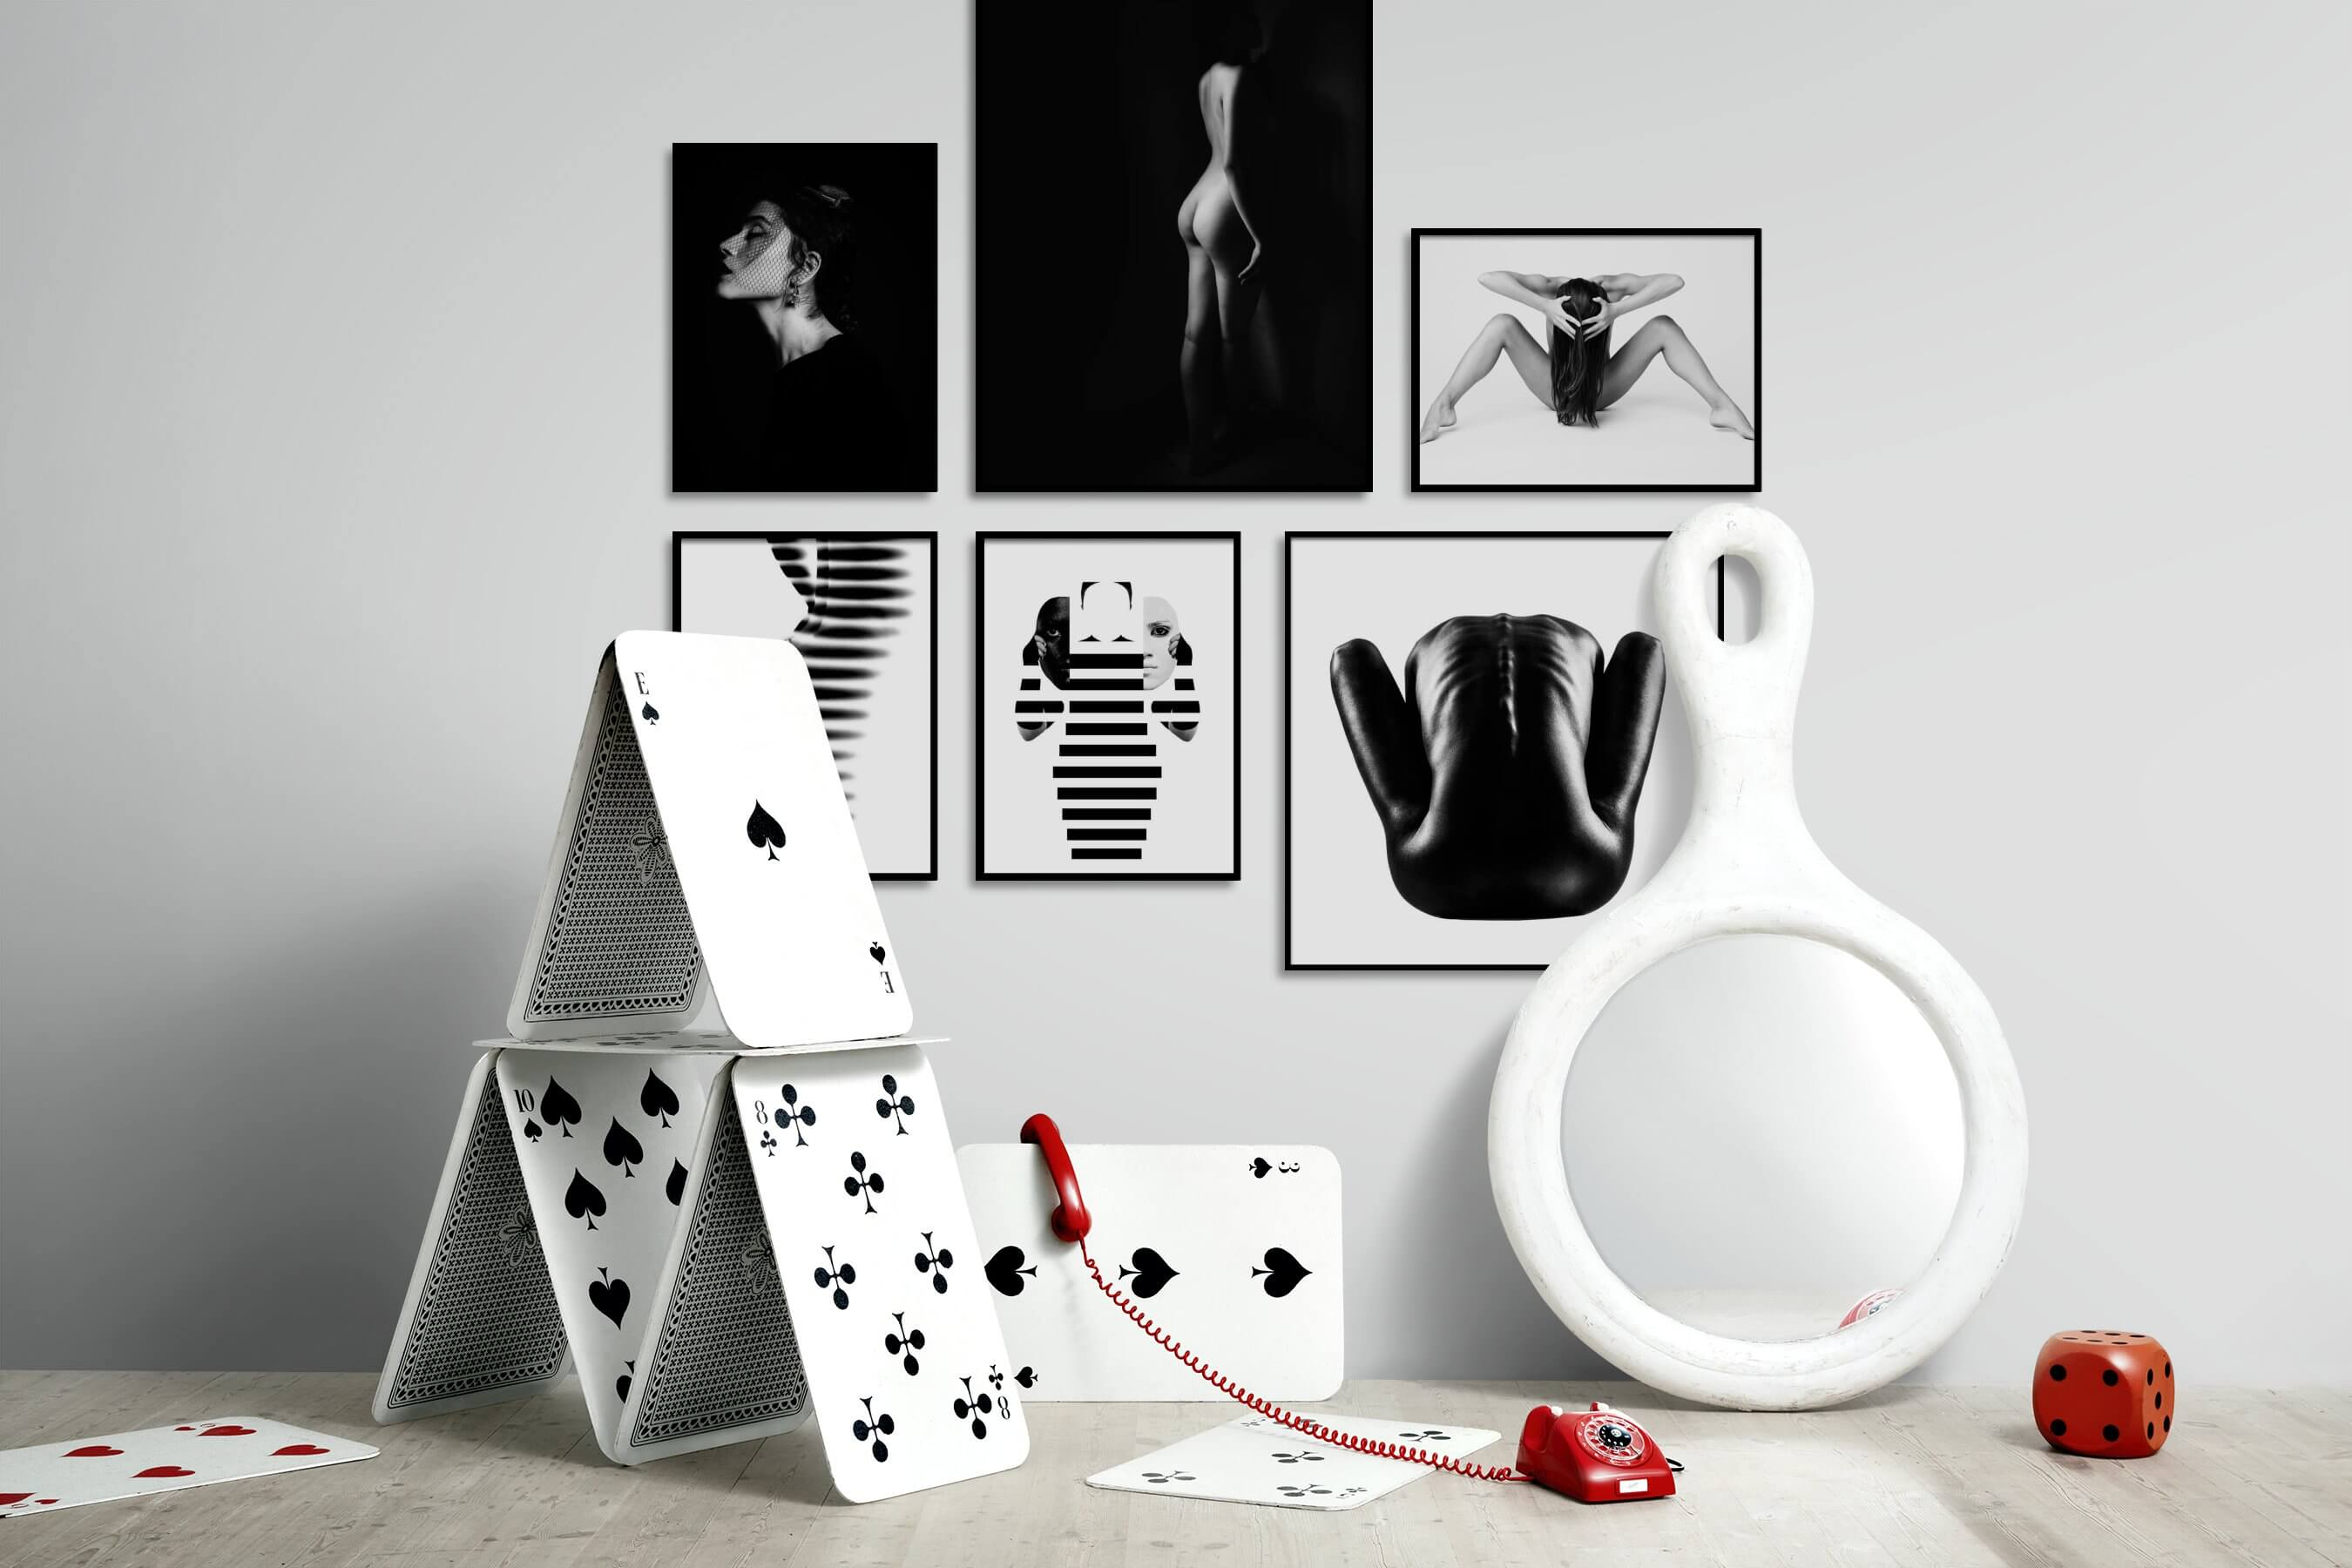 Gallery wall idea with six framed pictures arranged on a wall depicting Fashion & Beauty, Black & White, Dark Tones, For the Minimalist, Vintage, Bright Tones, For the Moderate, and Artsy